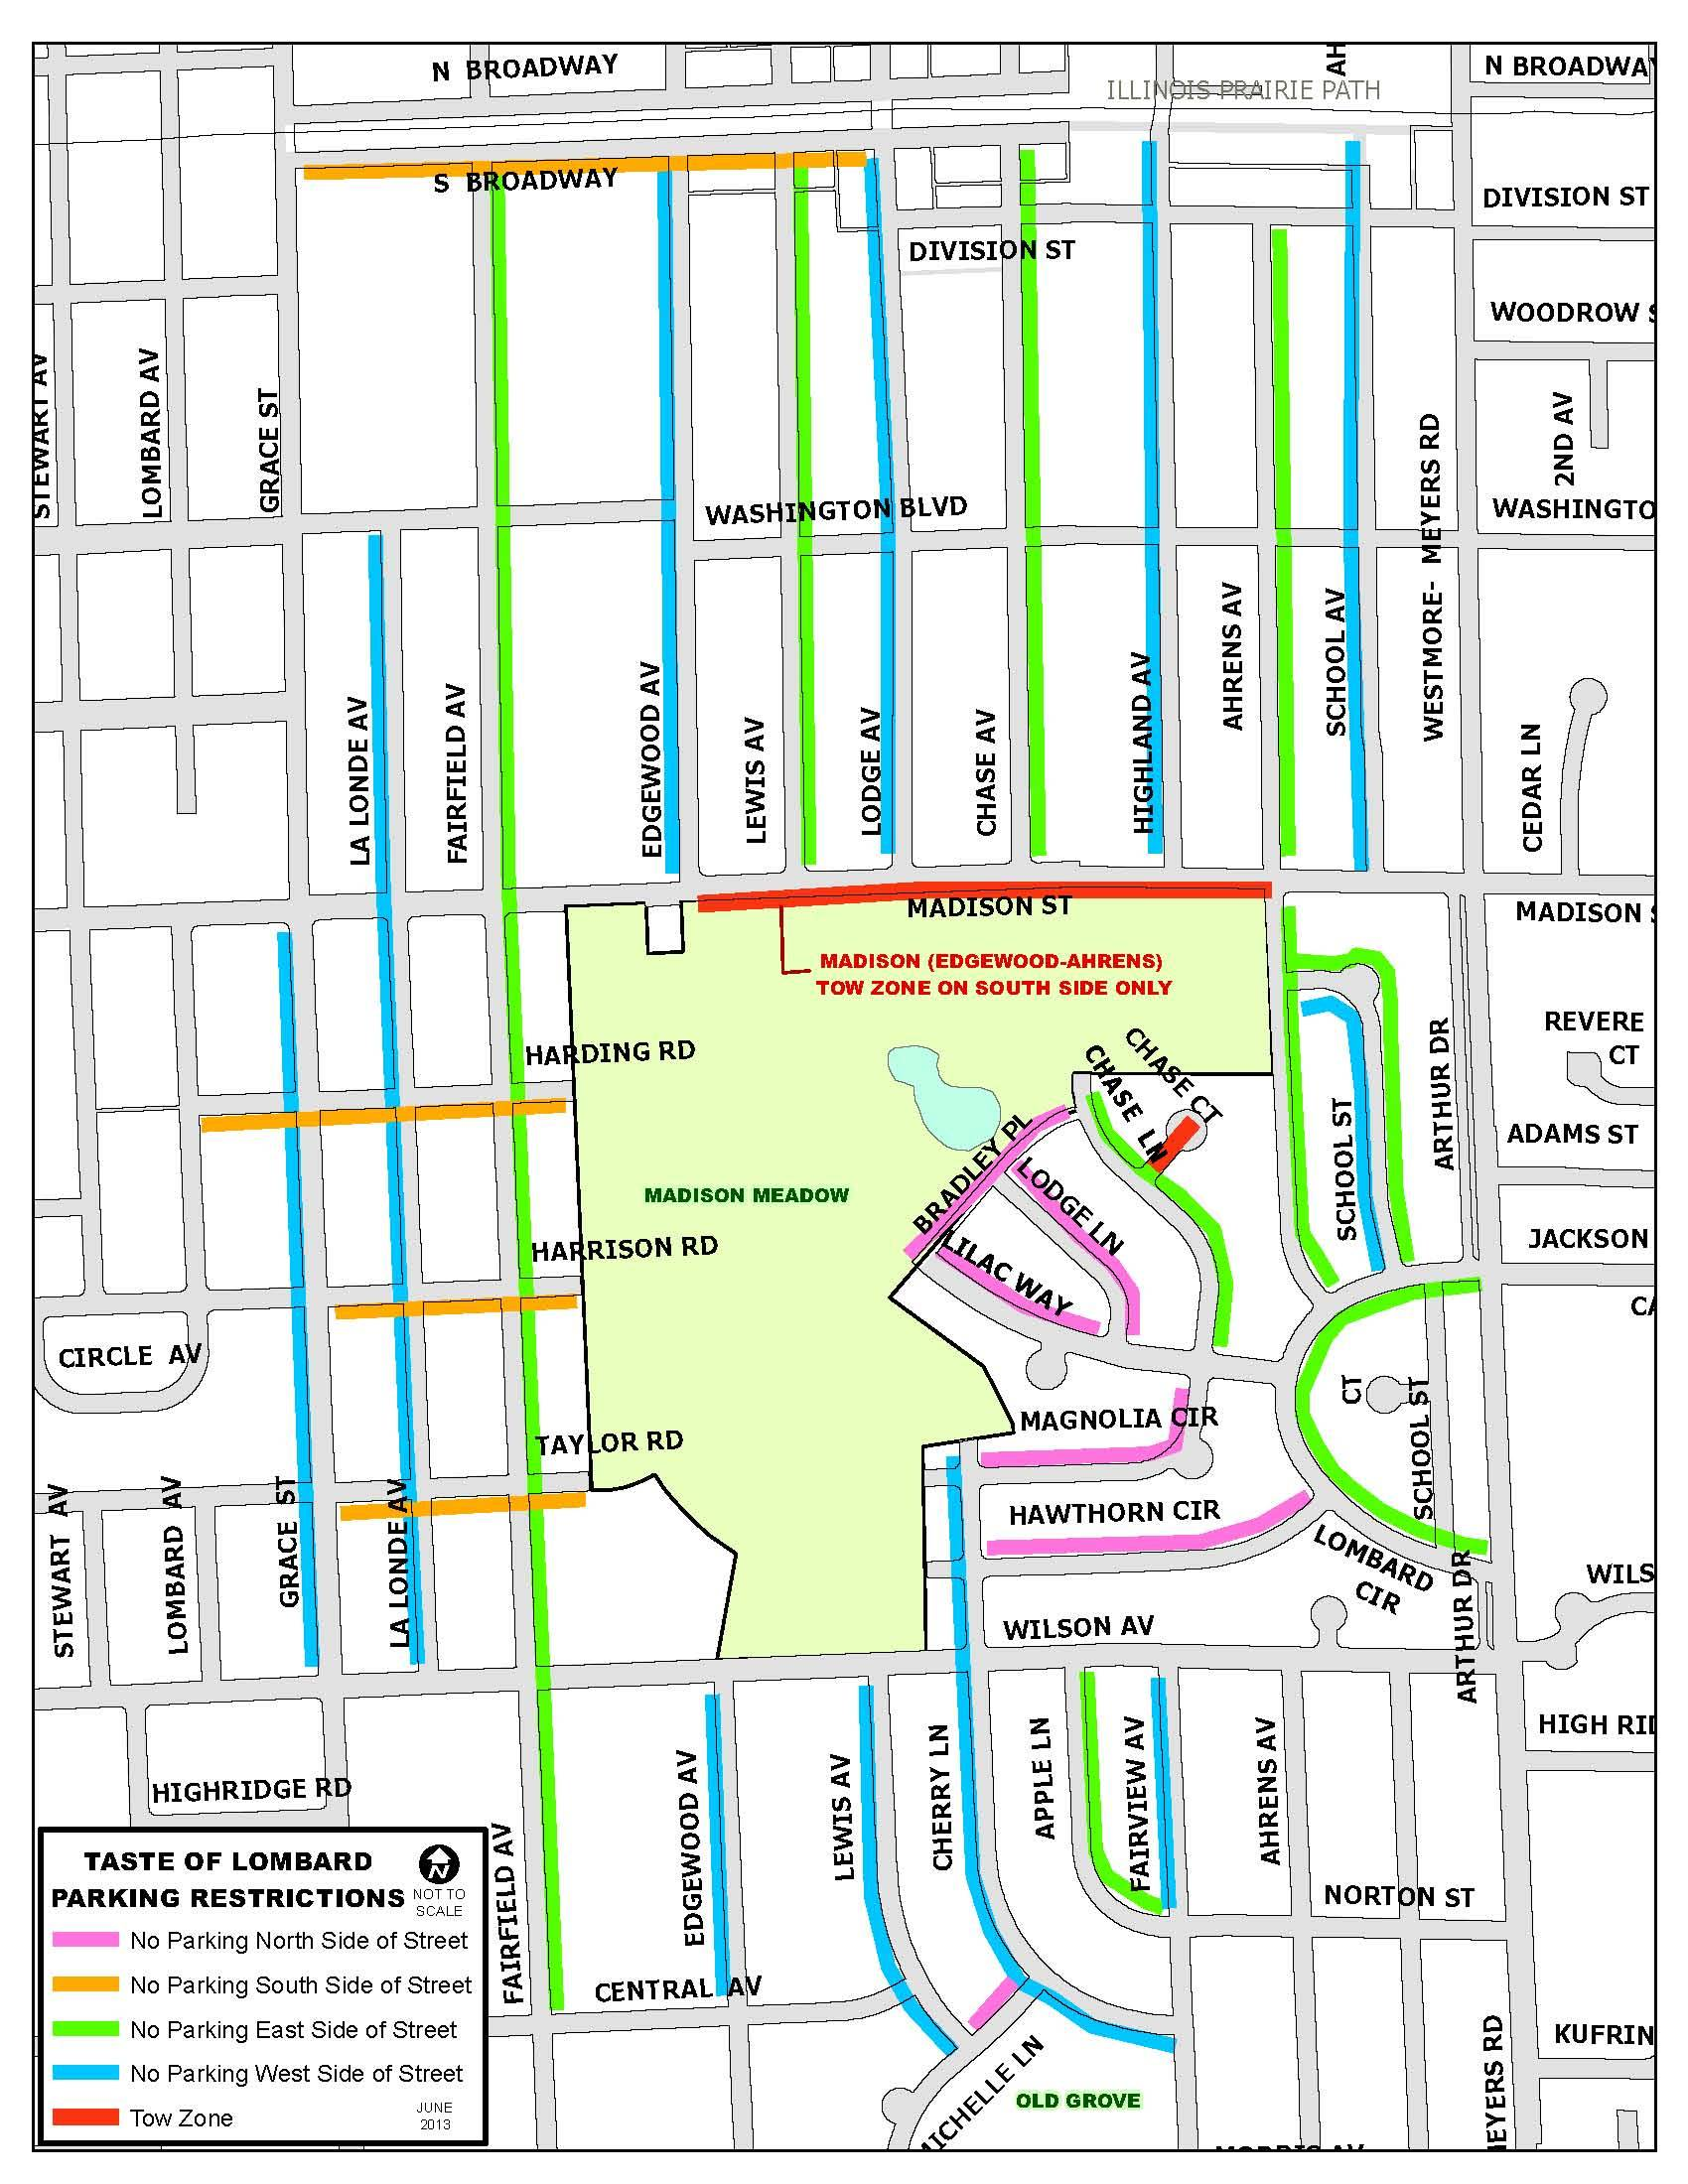 Map of parking restrictions during Taste of Lombard 2013.